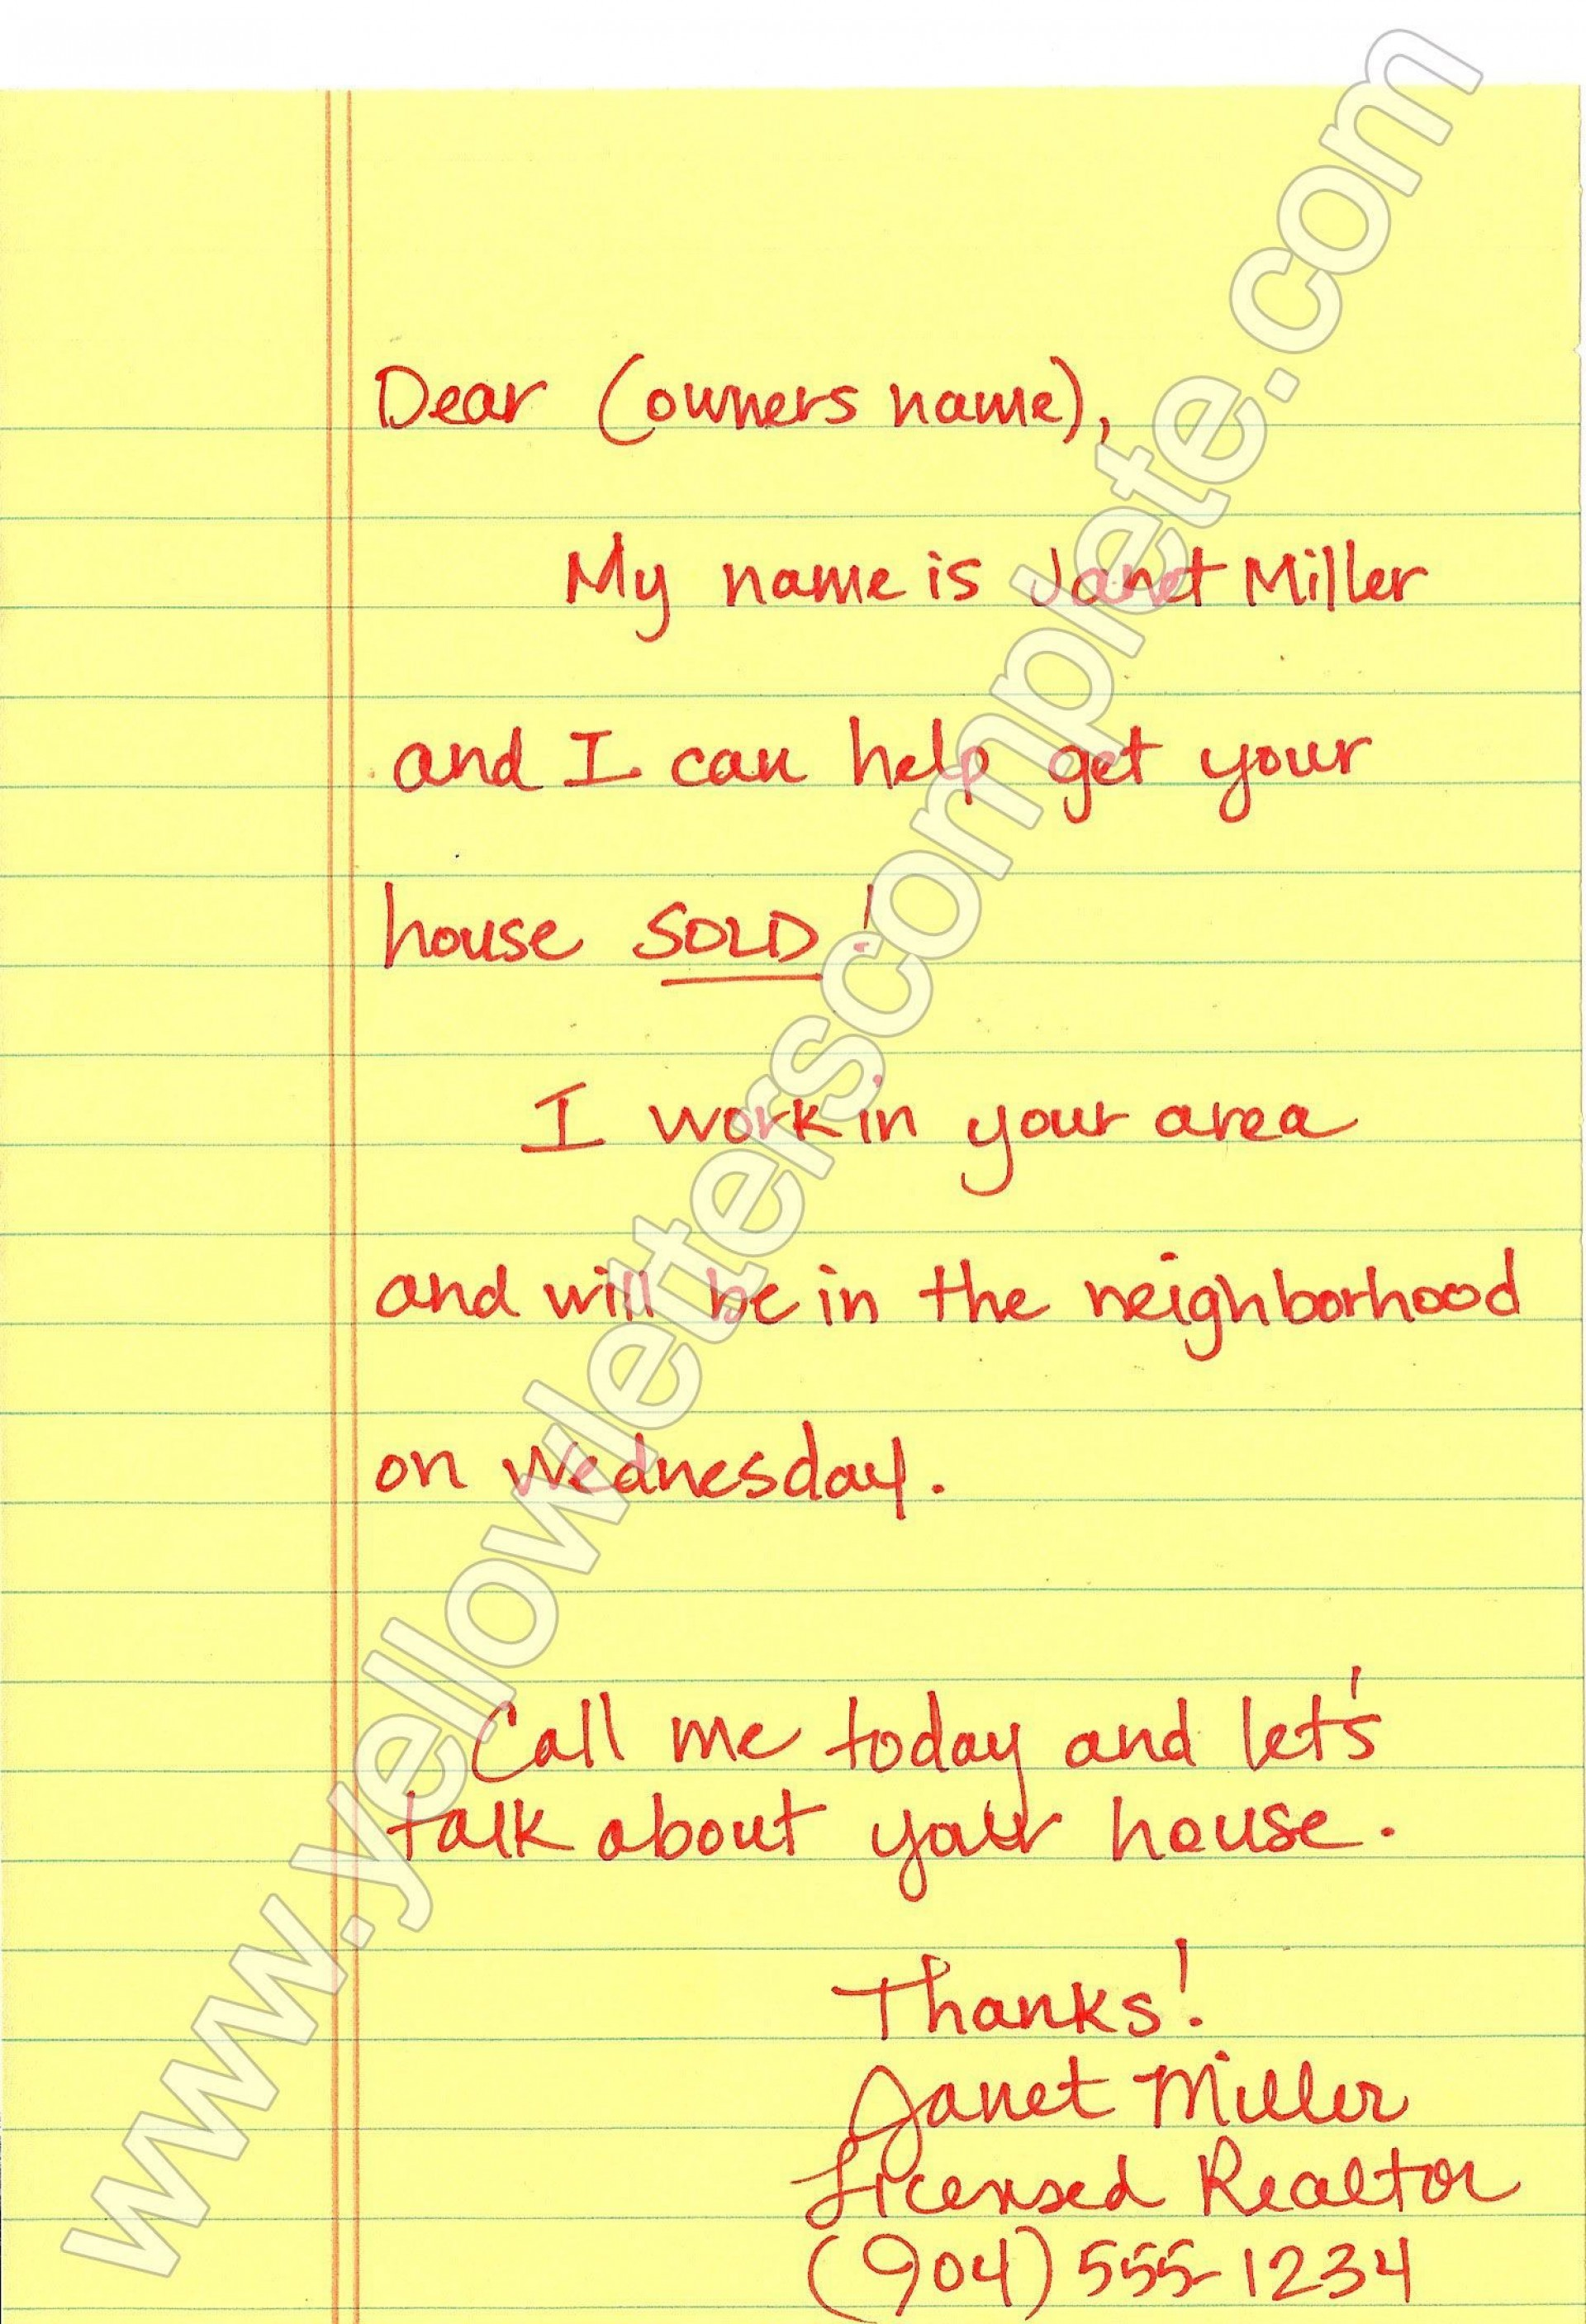 000 Top Real Estate Marketing Letter Template Image  Templates1920